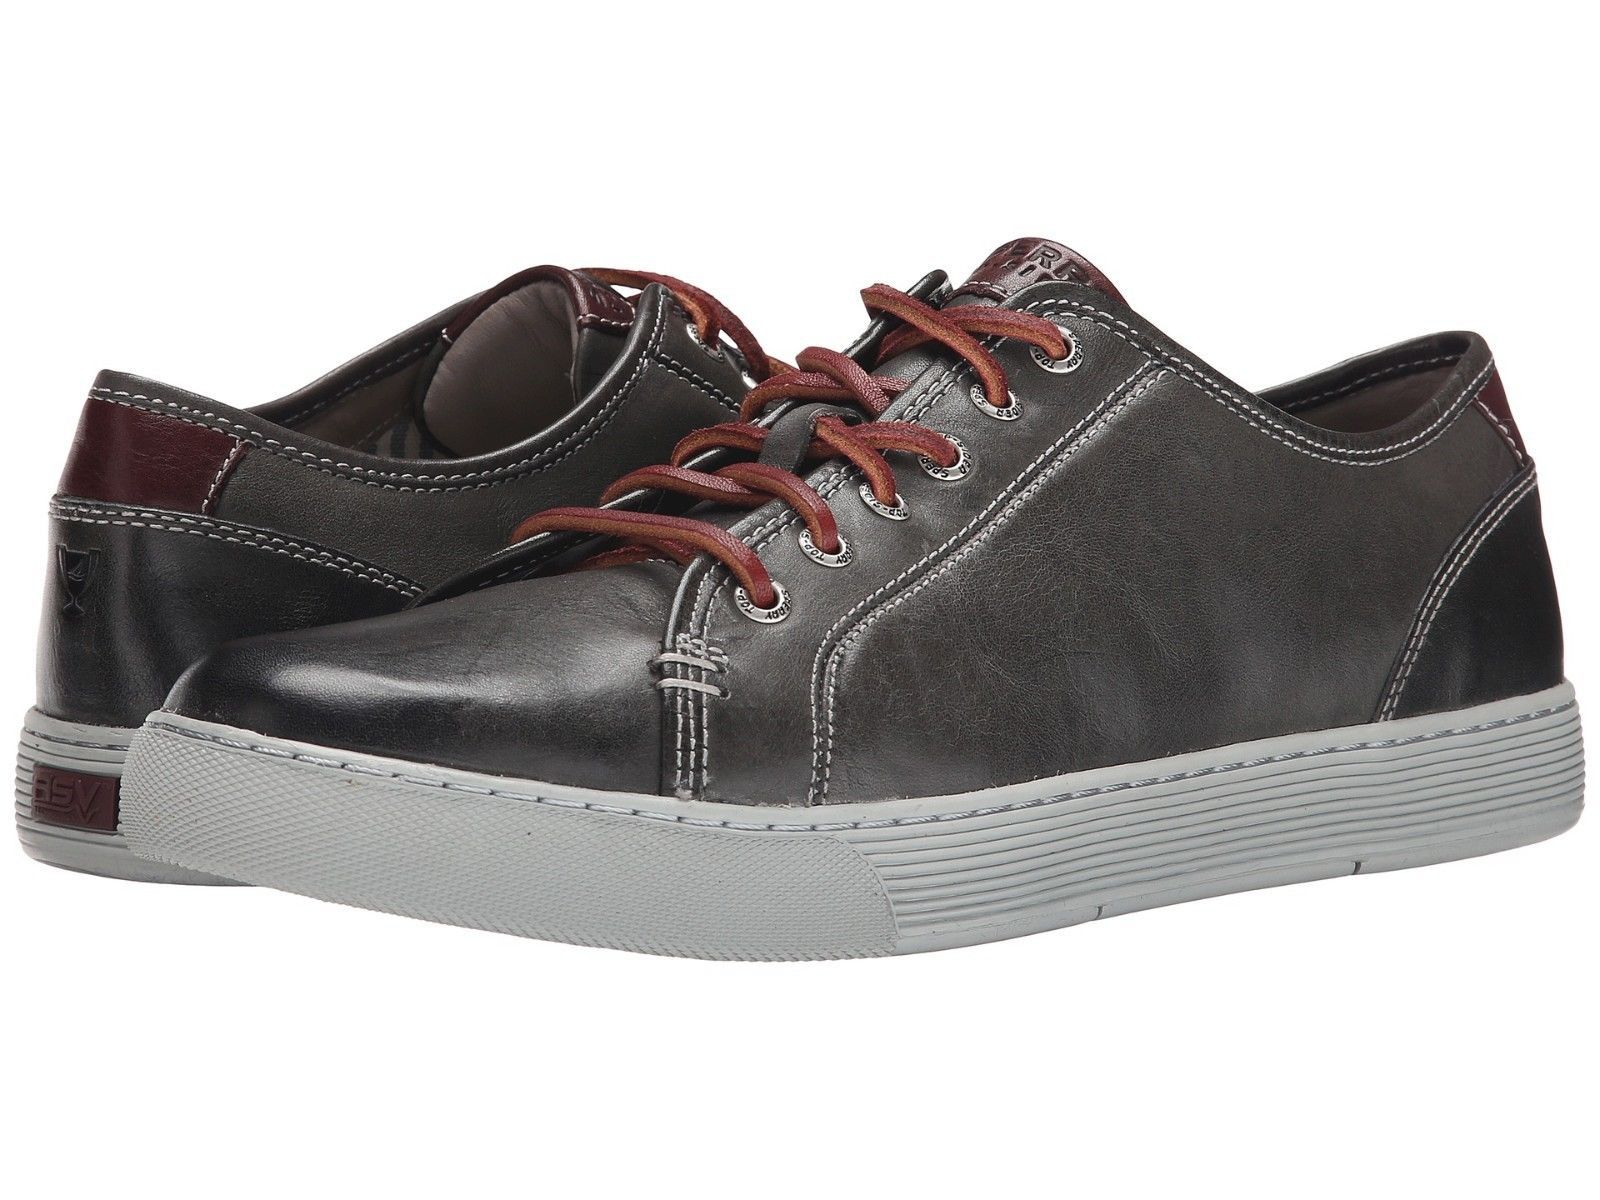 6f564c0359e5f Men s Sperry Top-Sider Gold Cup Sport Casual and 50 similar items. S l1600